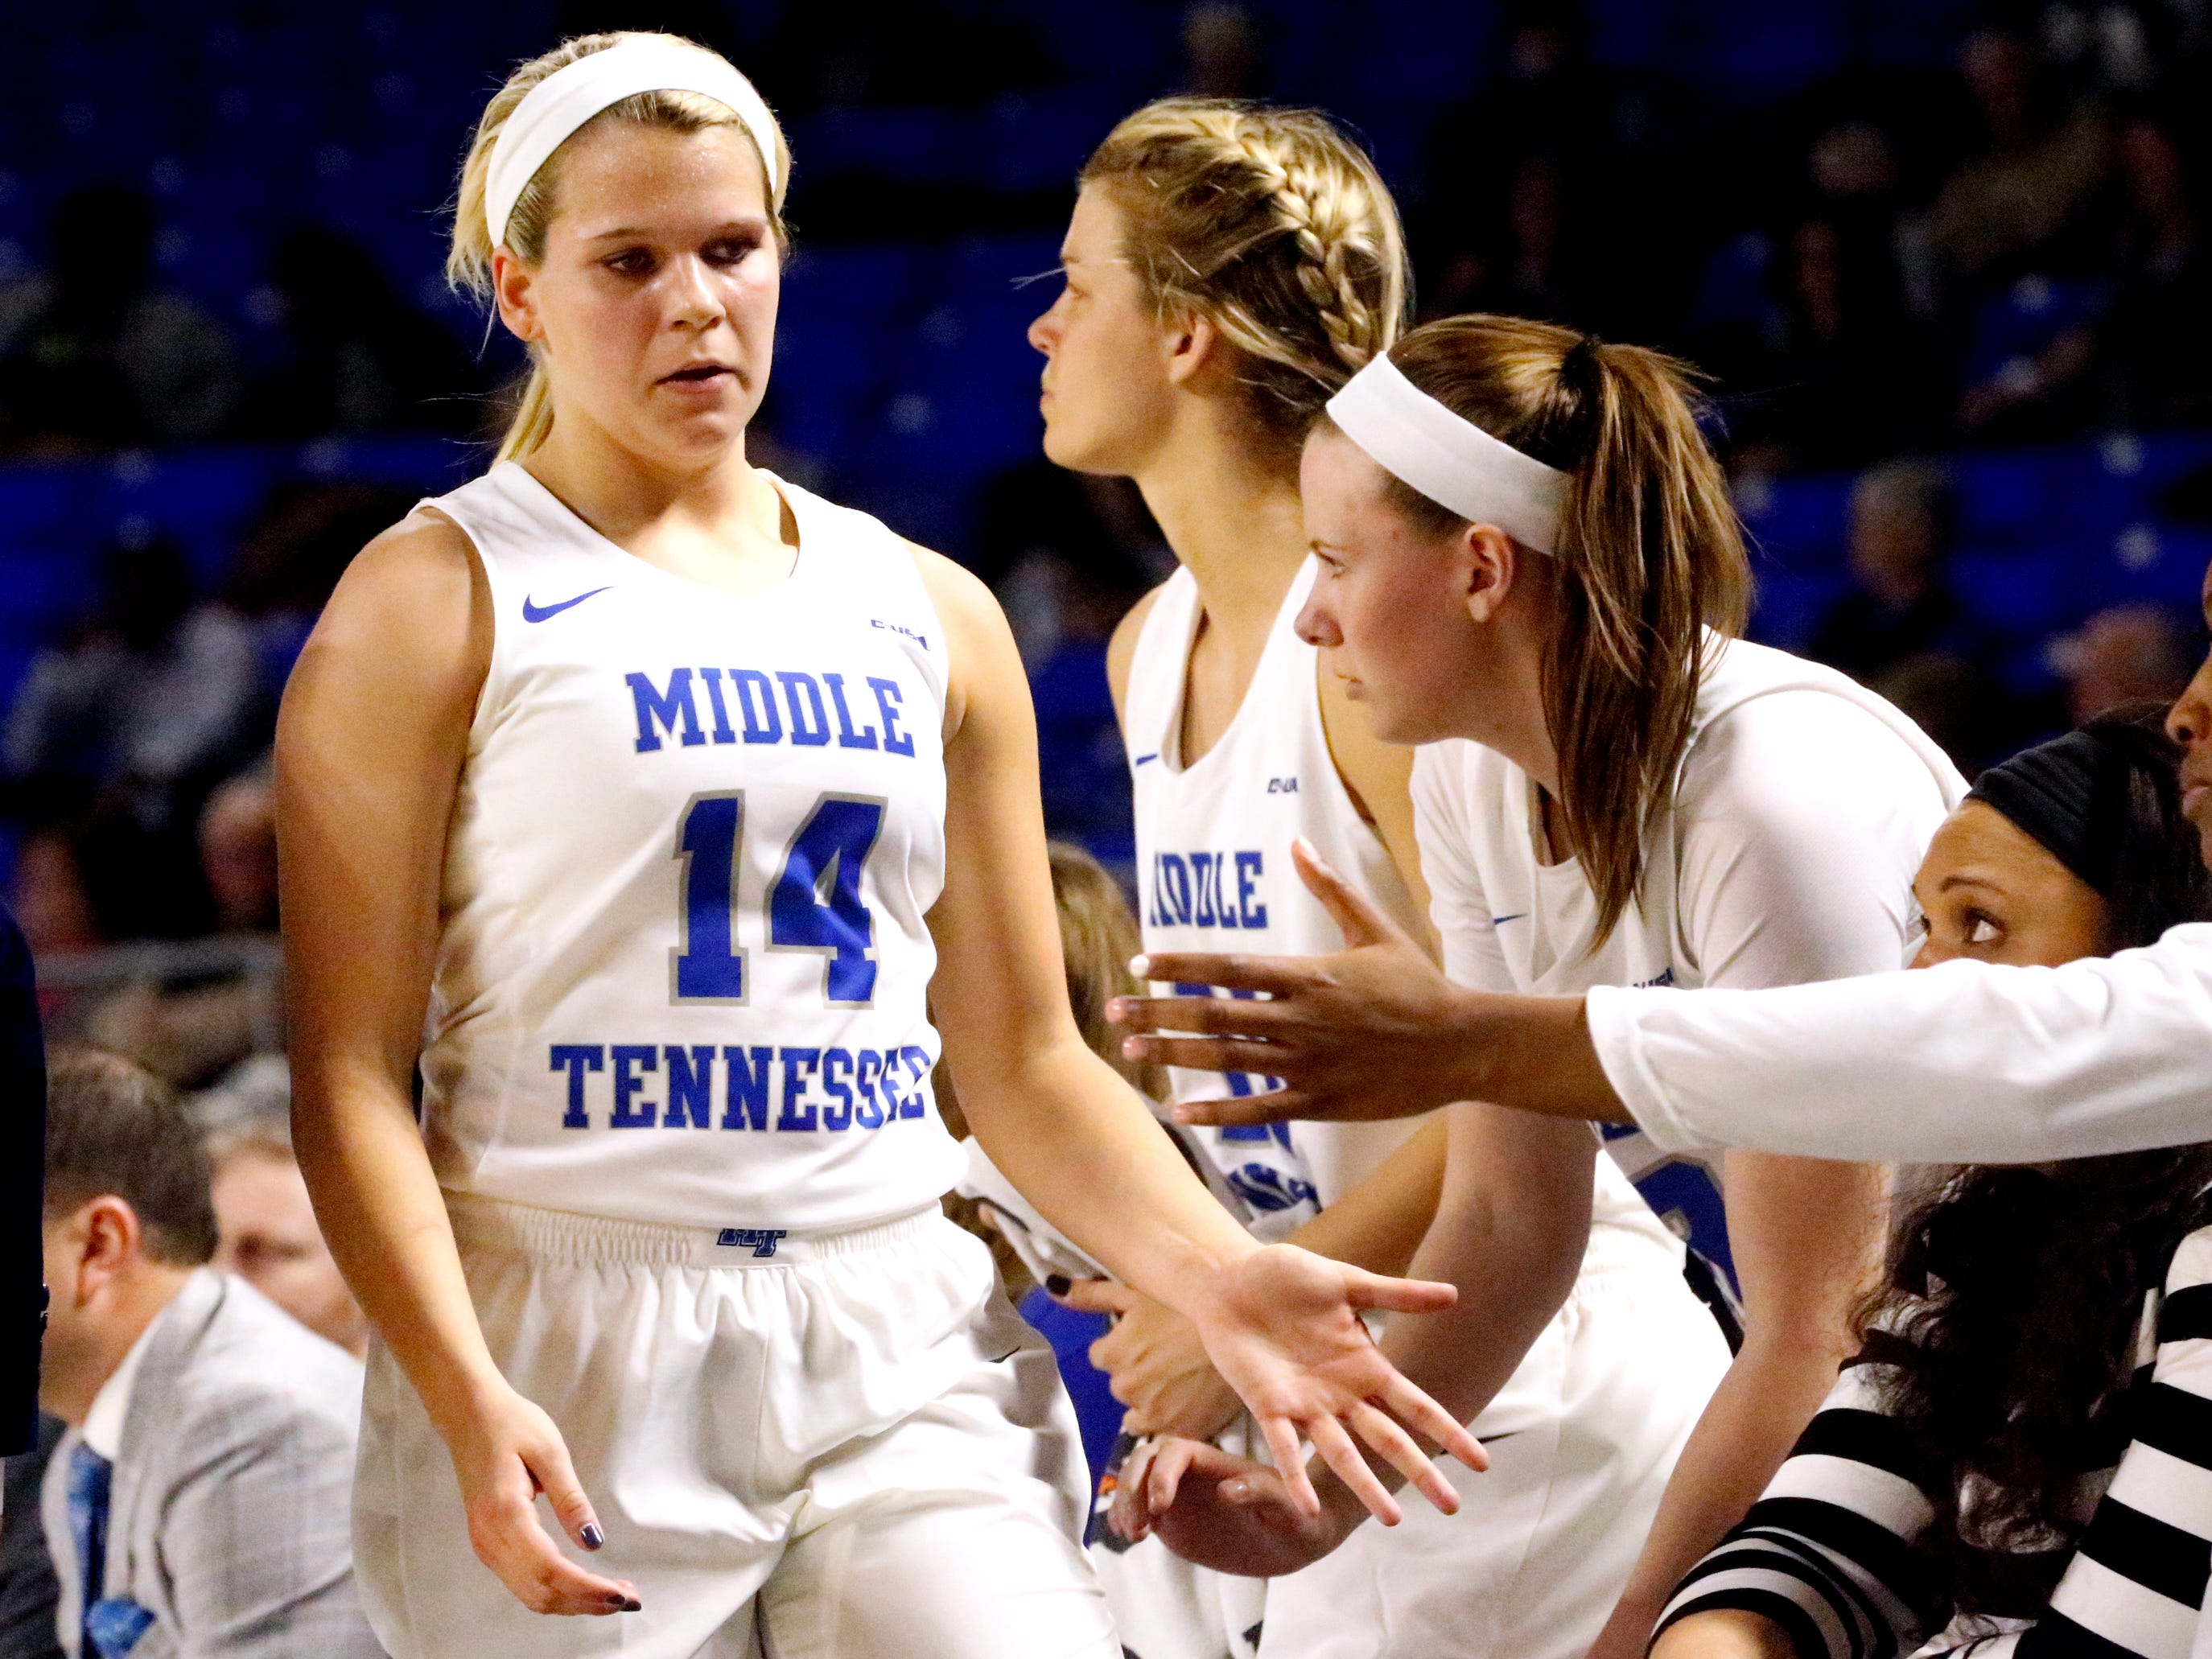 MTSU's guard Katie Collier (14) comes out of the game in the first half of the game against Rice on Thursday Jan. 24, 2019.